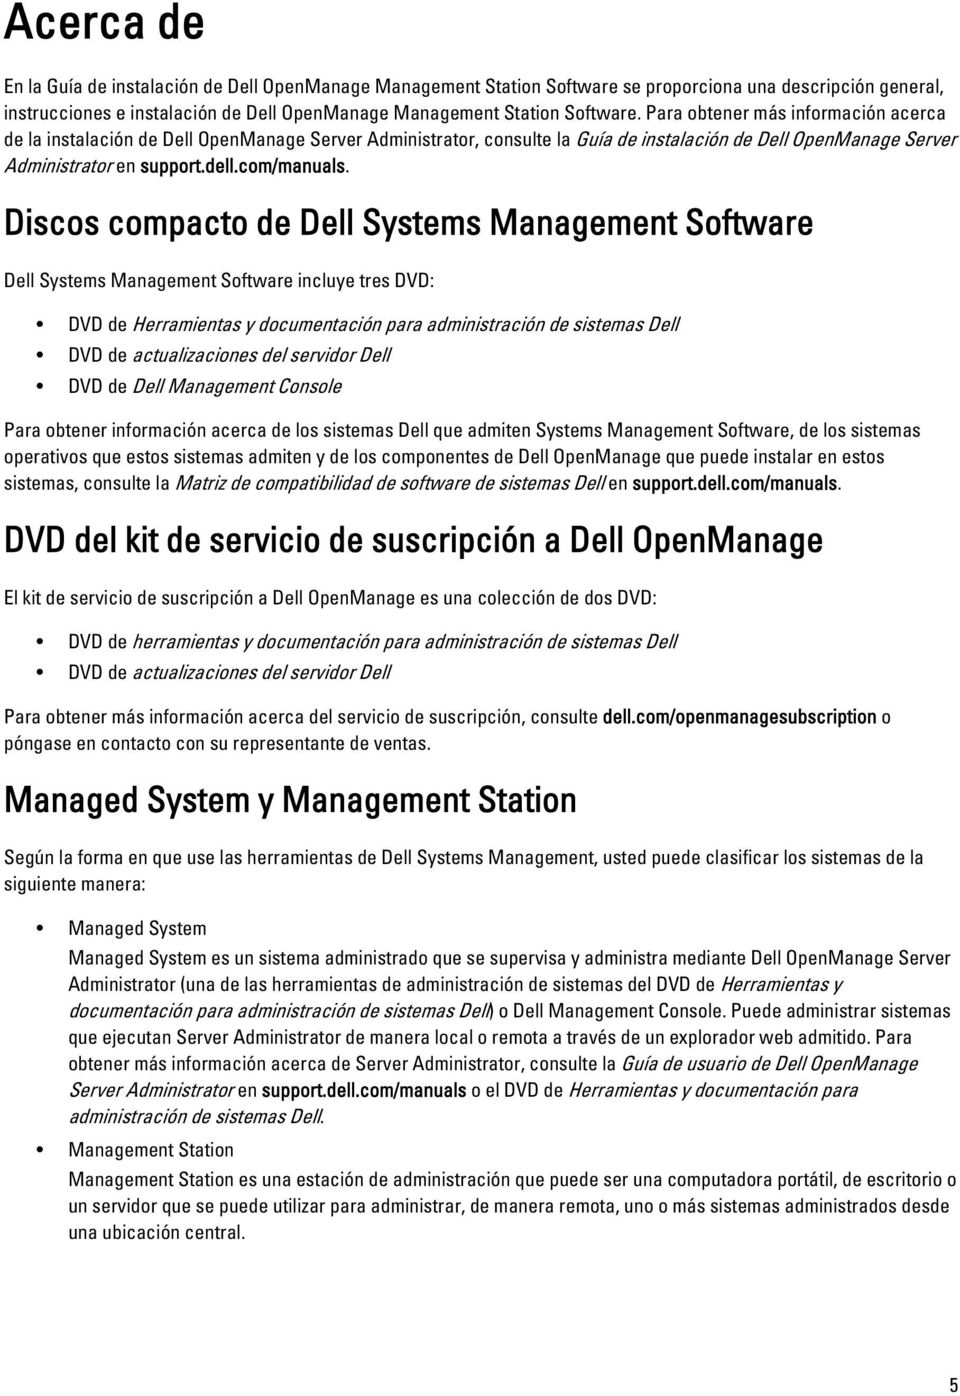 Discos compacto de Dell Systems Management Software Dell Systems Management Software incluye tres DVD: DVD de Herramientas y documentación para administración de sistemas Dell DVD de actualizaciones